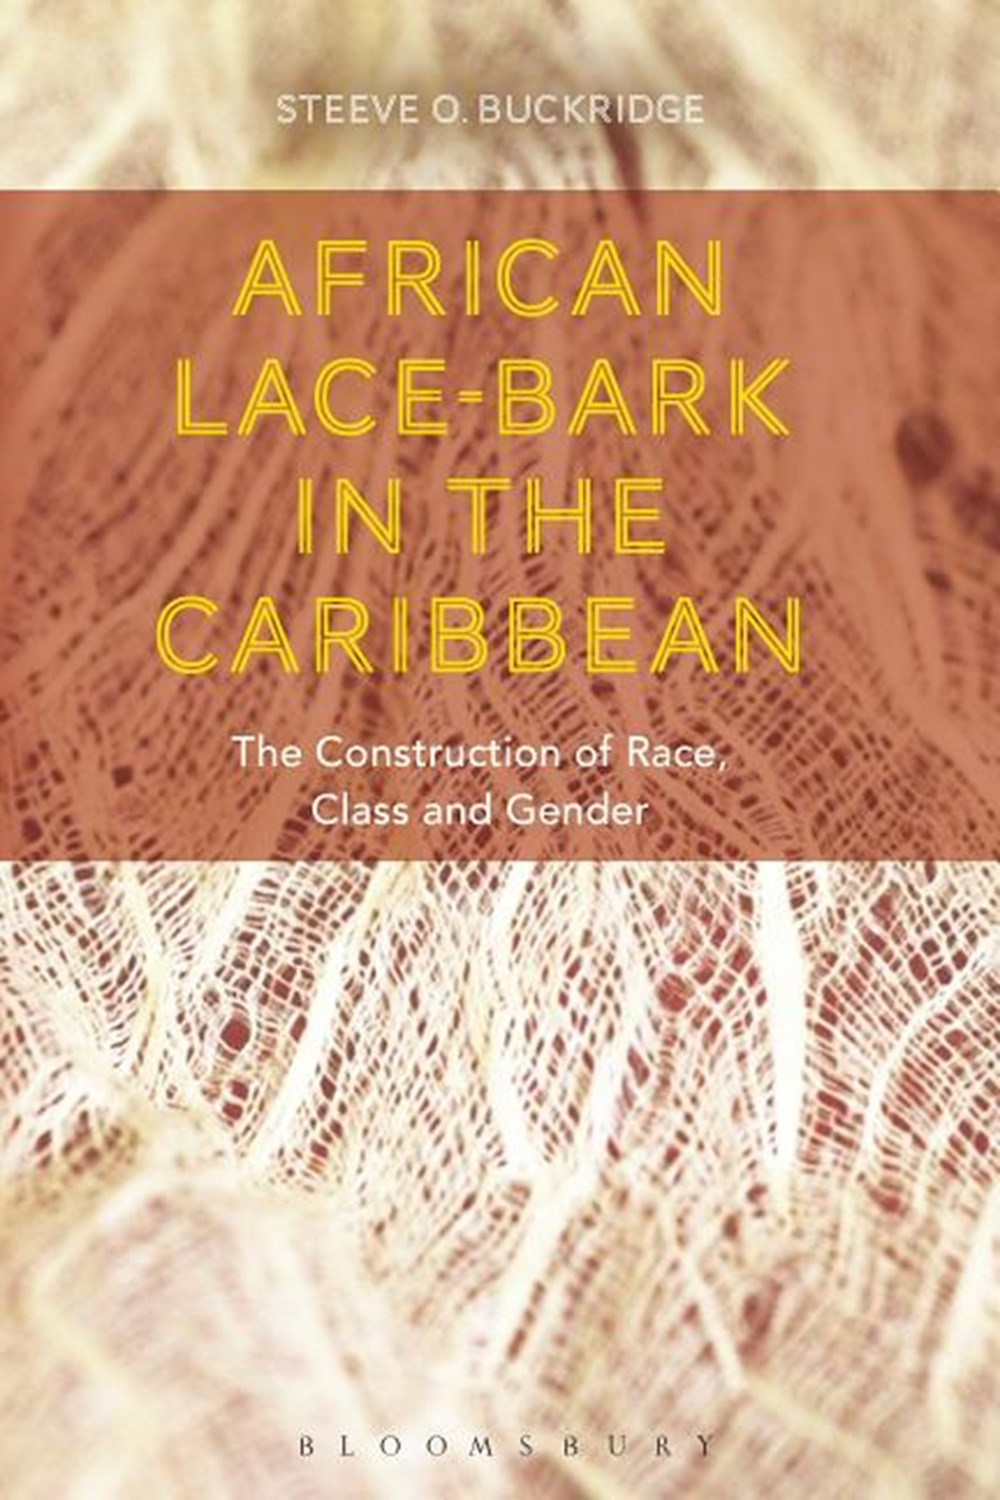 African Lace-Bark in the Caribbean The Construction of Race, Class, and Gender